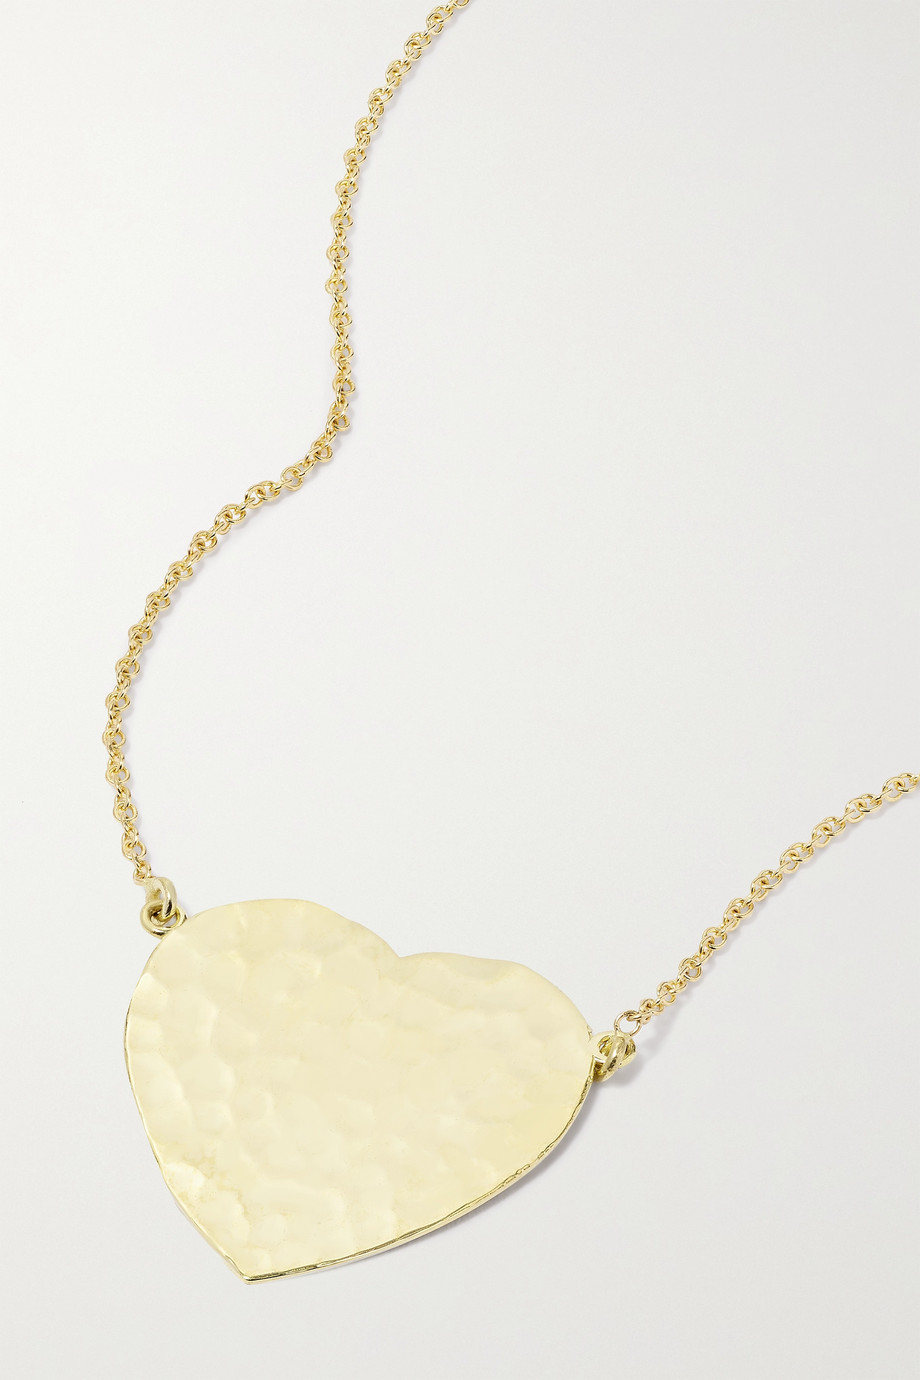 JENNIFER MEYER Hammered 18-karat gold necklace